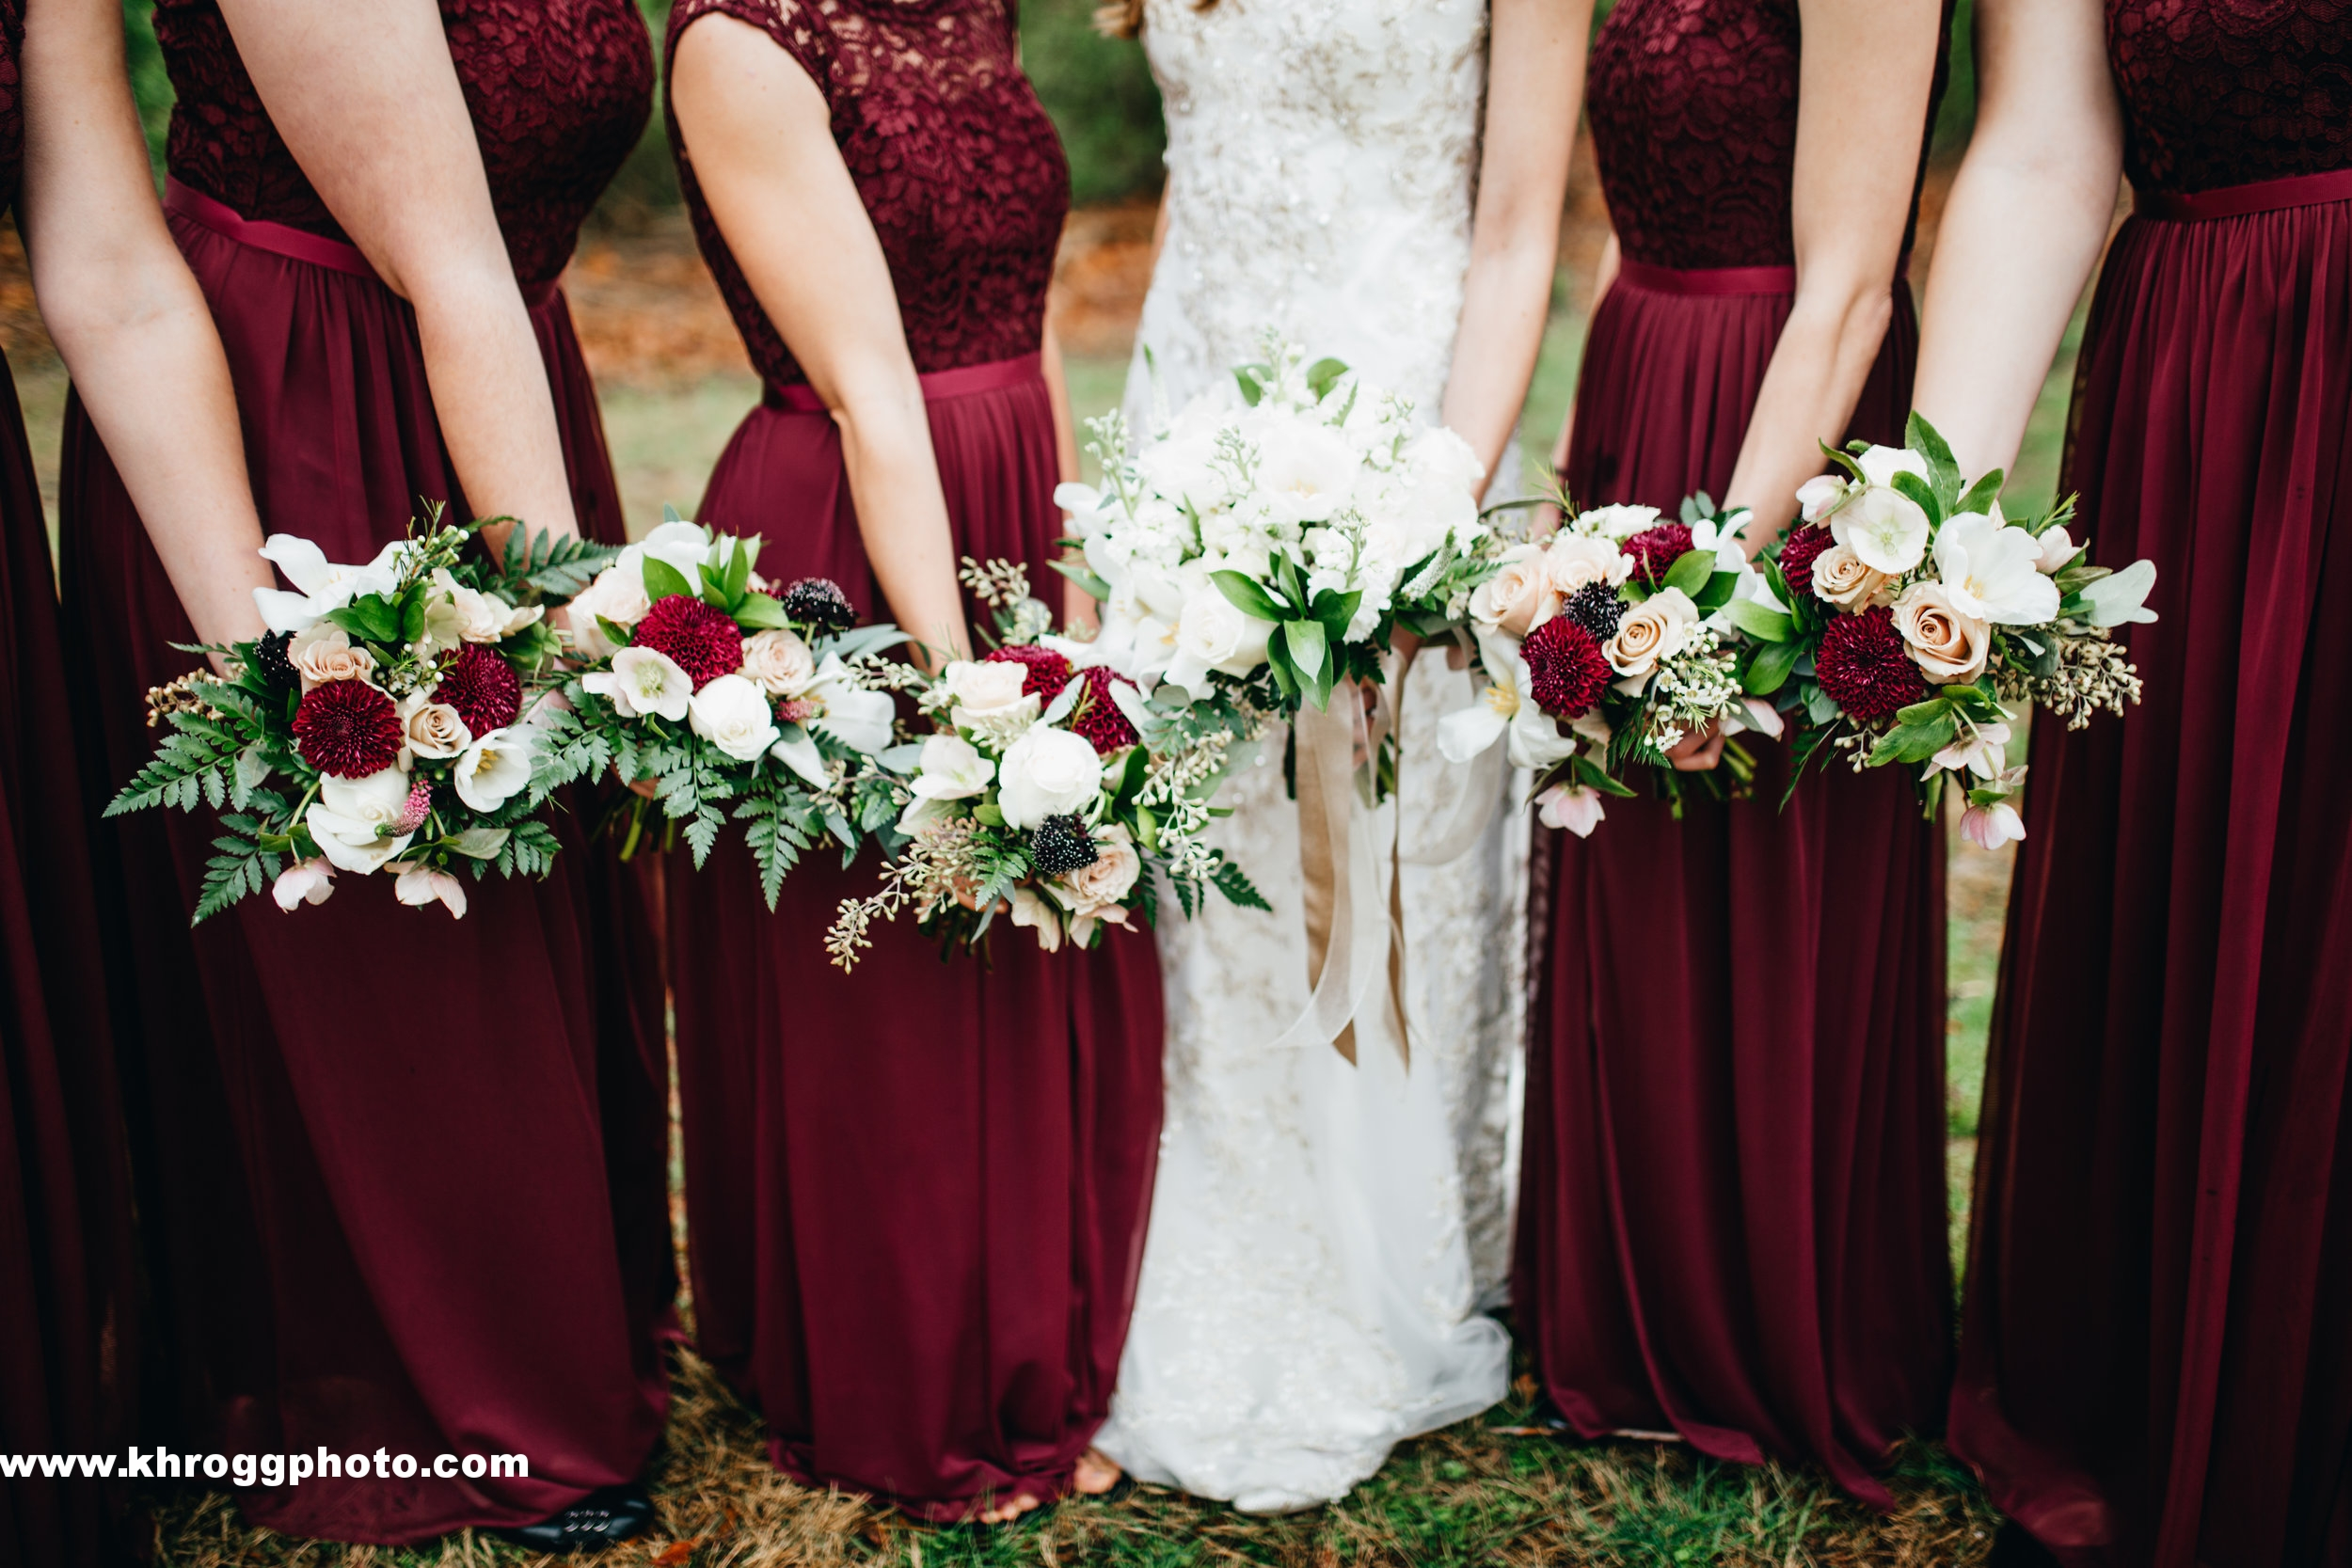 Burgundy and ivory with gold details